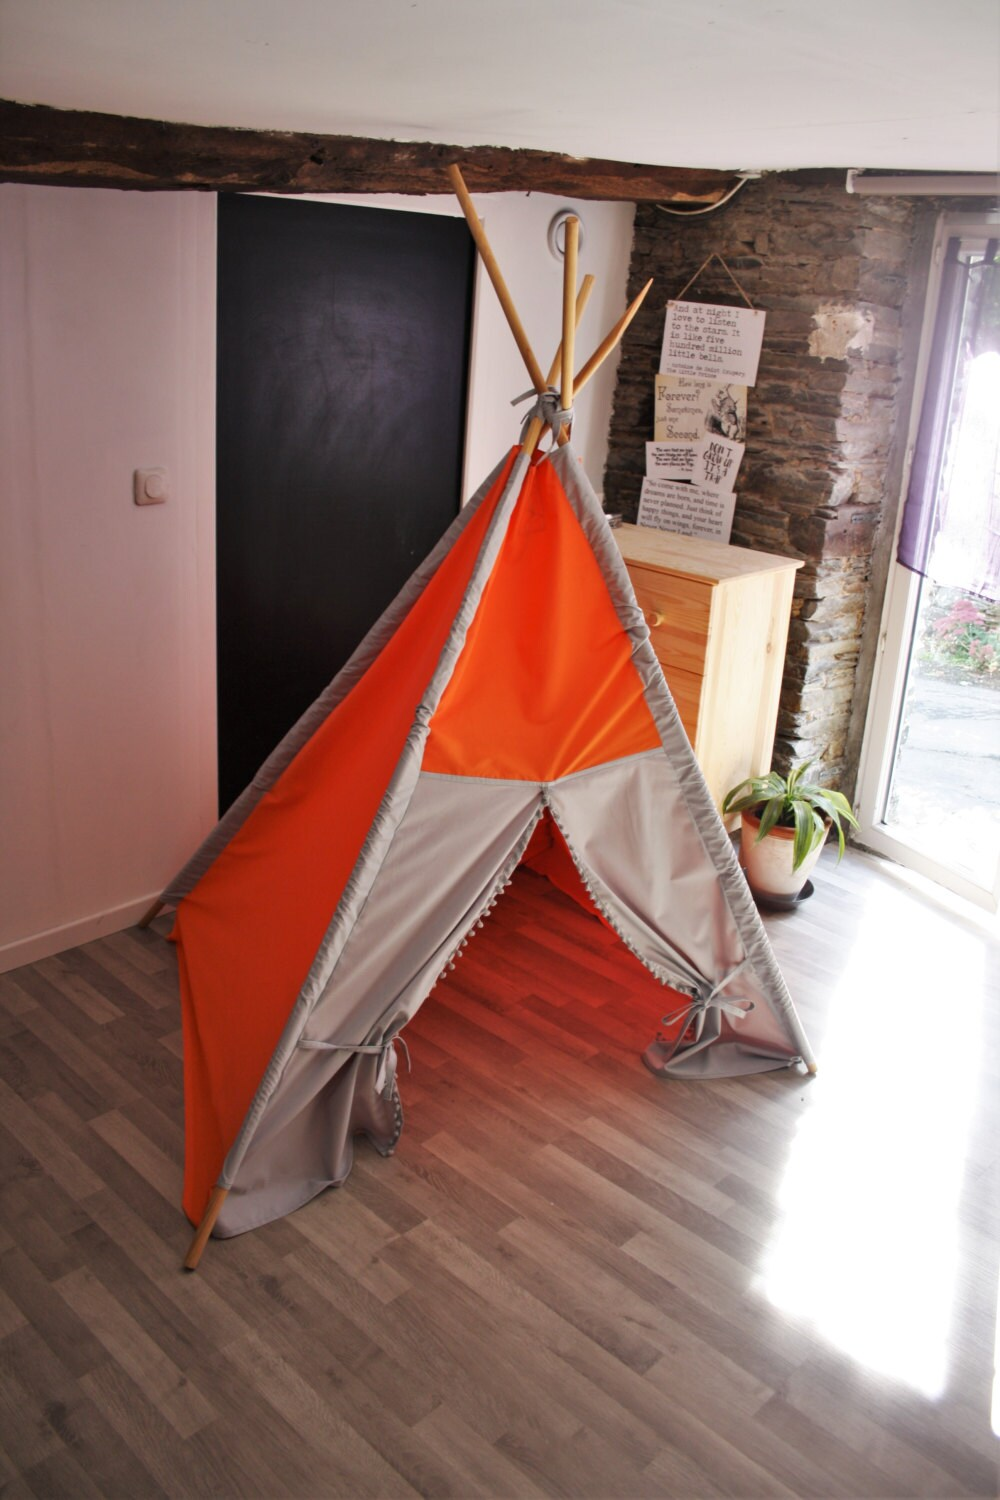 gro e kinder tipi tipi zelt zelt spielzelt keine holz stangen etsy. Black Bedroom Furniture Sets. Home Design Ideas